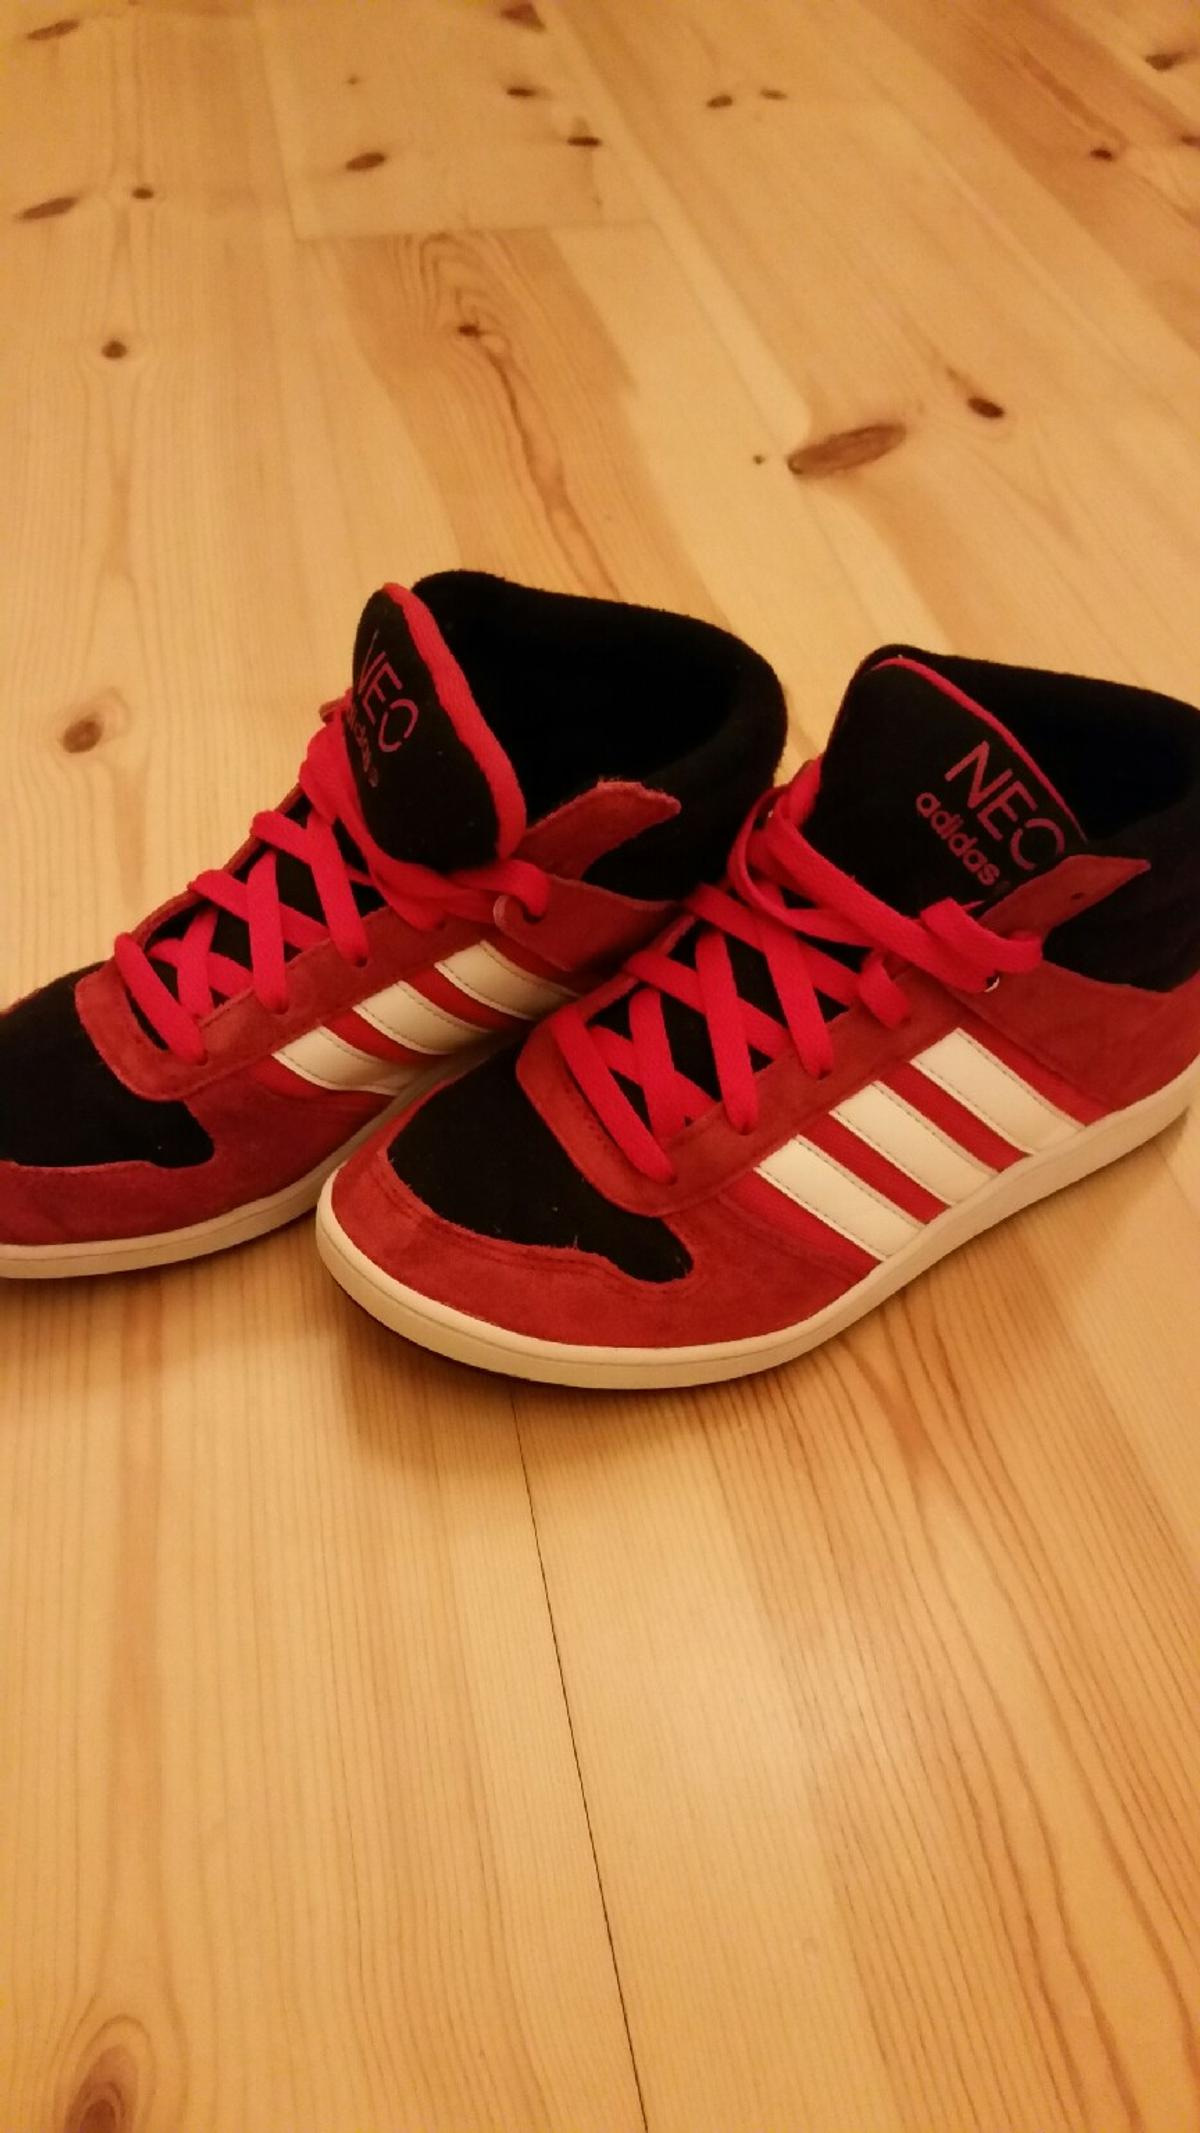 460494ae9aefef Sale For 00 Shpock In Schuhe €10 Adidas Neo Rot 12587 Berlin 15FKJcTl3u